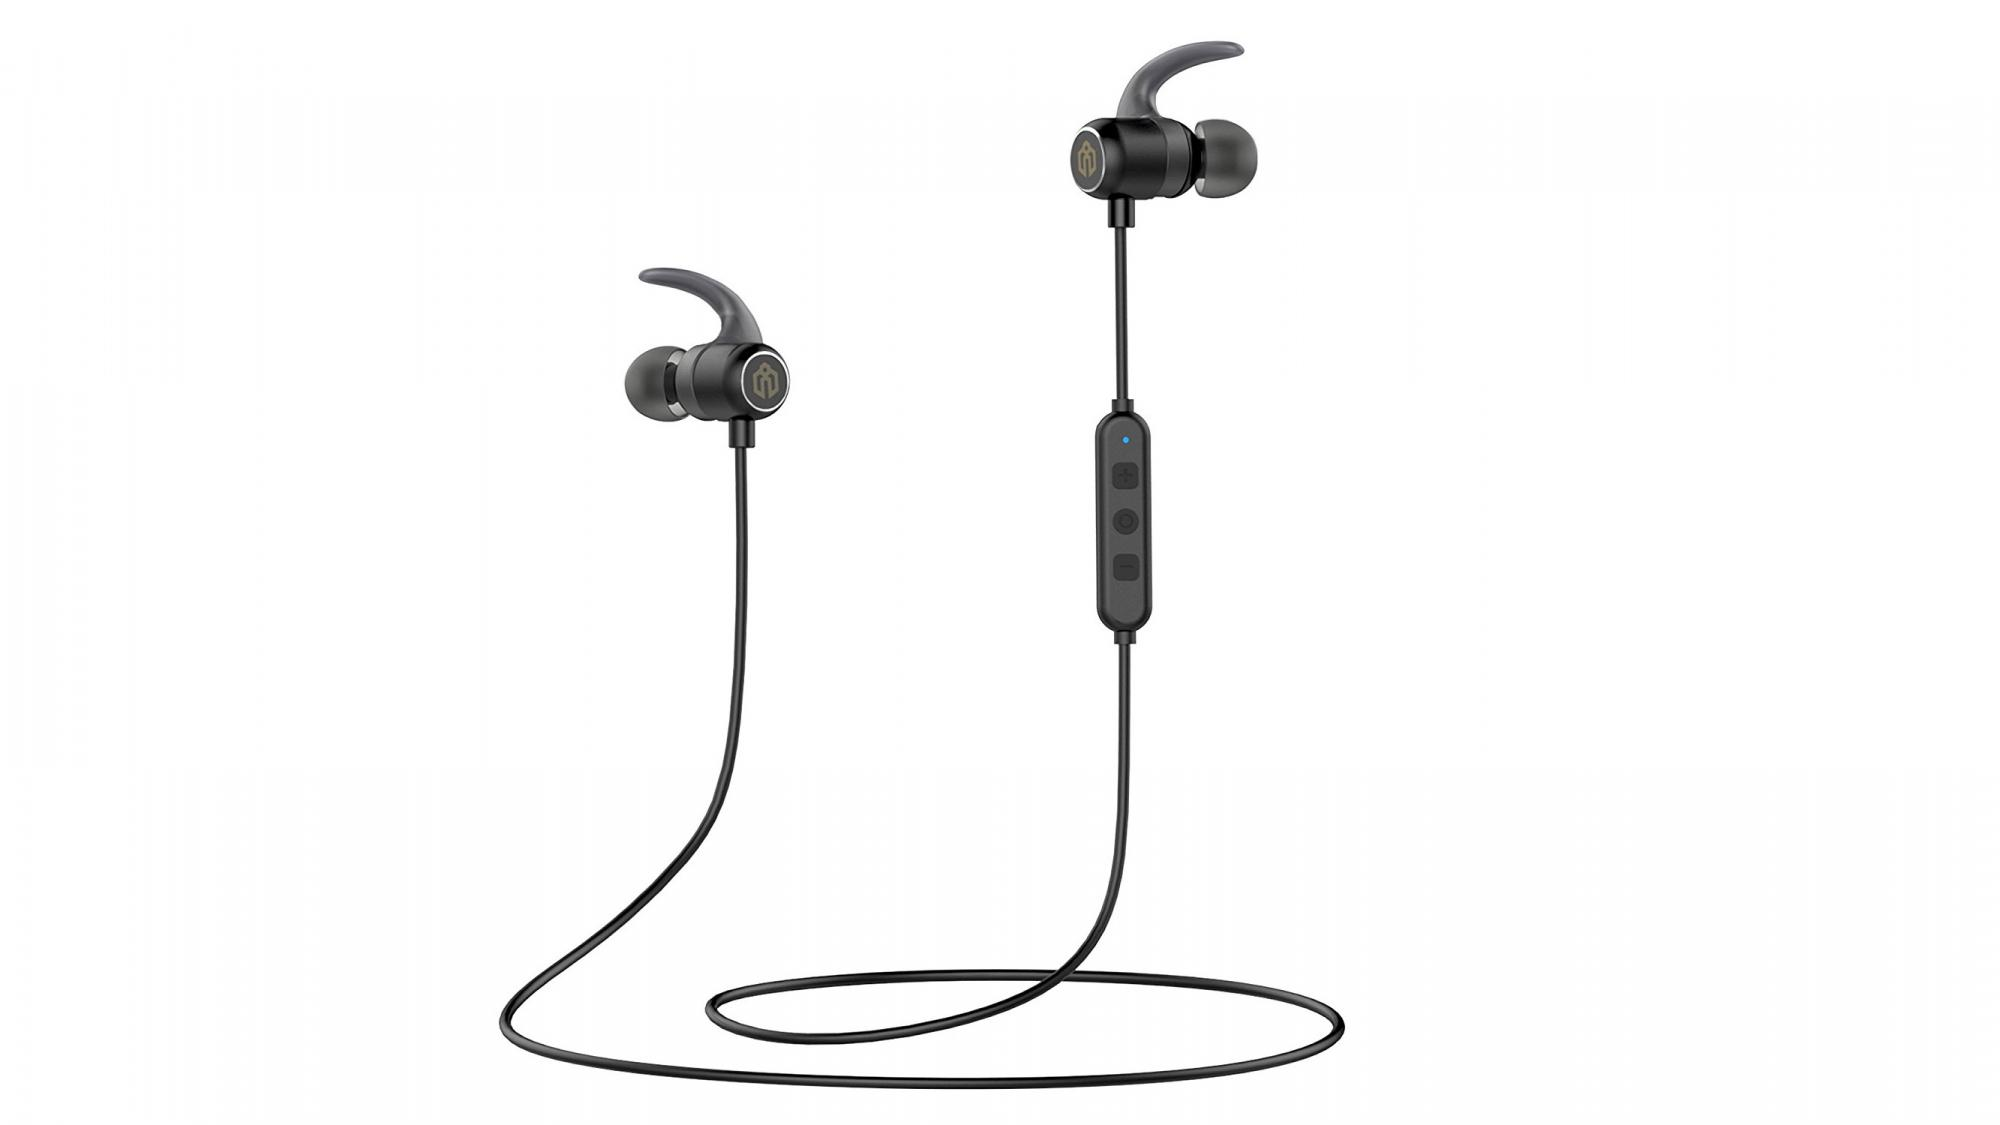 Iclever Xfree Mini Bluetooth Headphones Review